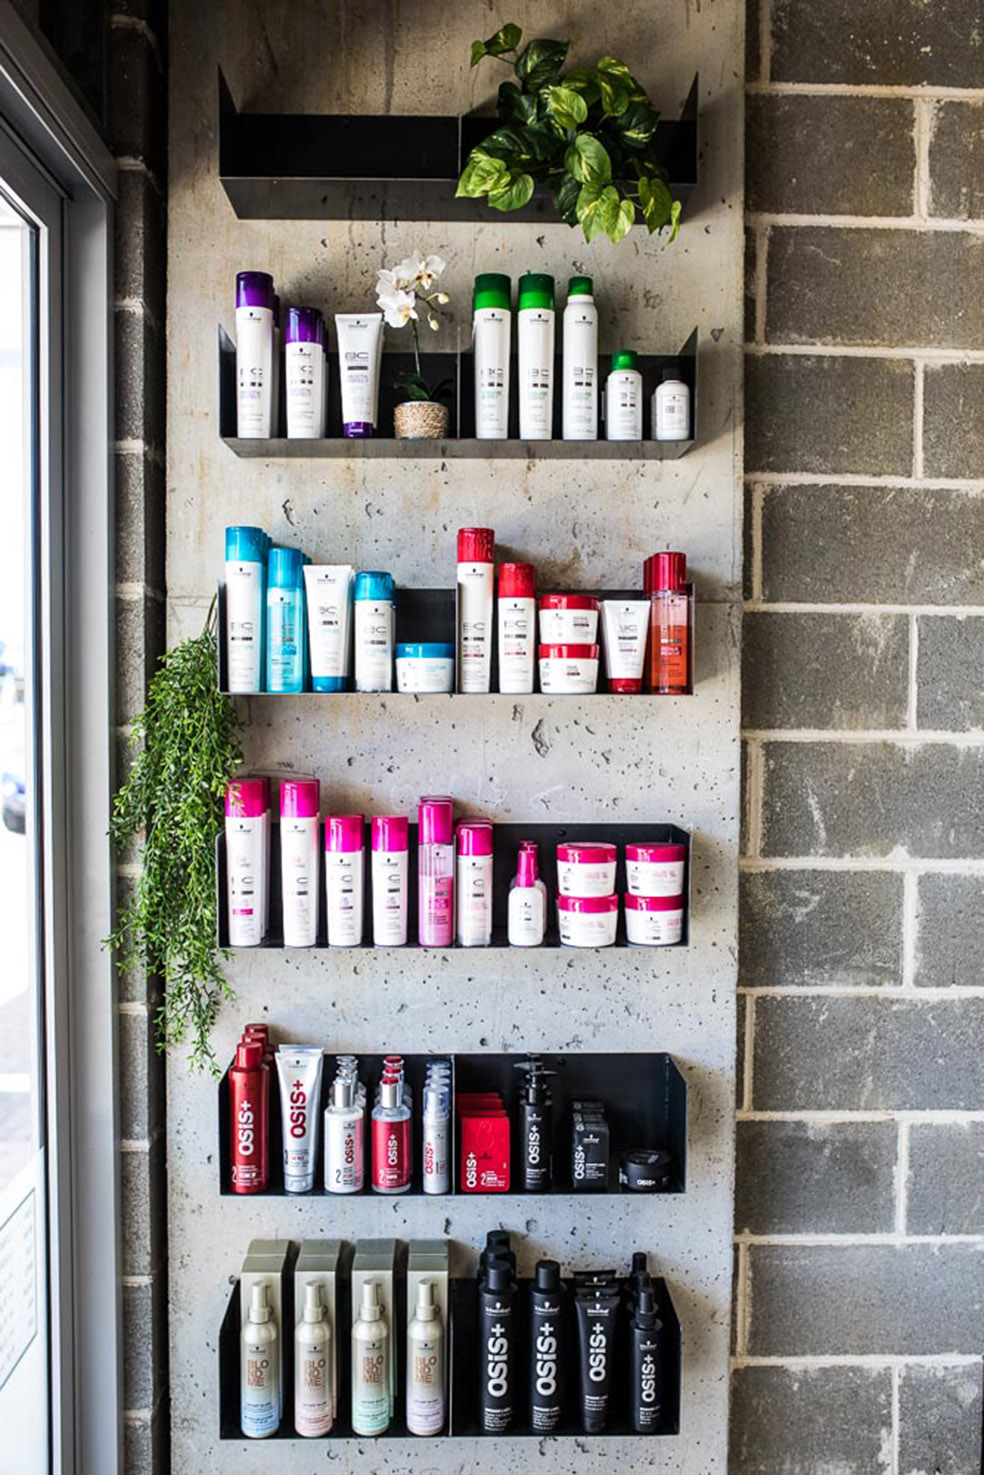 Snip Into hair and beauty salon_Sydney_FORMplay Architecture Interior Design_Off Form COncrete_Hot Rolled Bespoke Steel Shelving.jpg